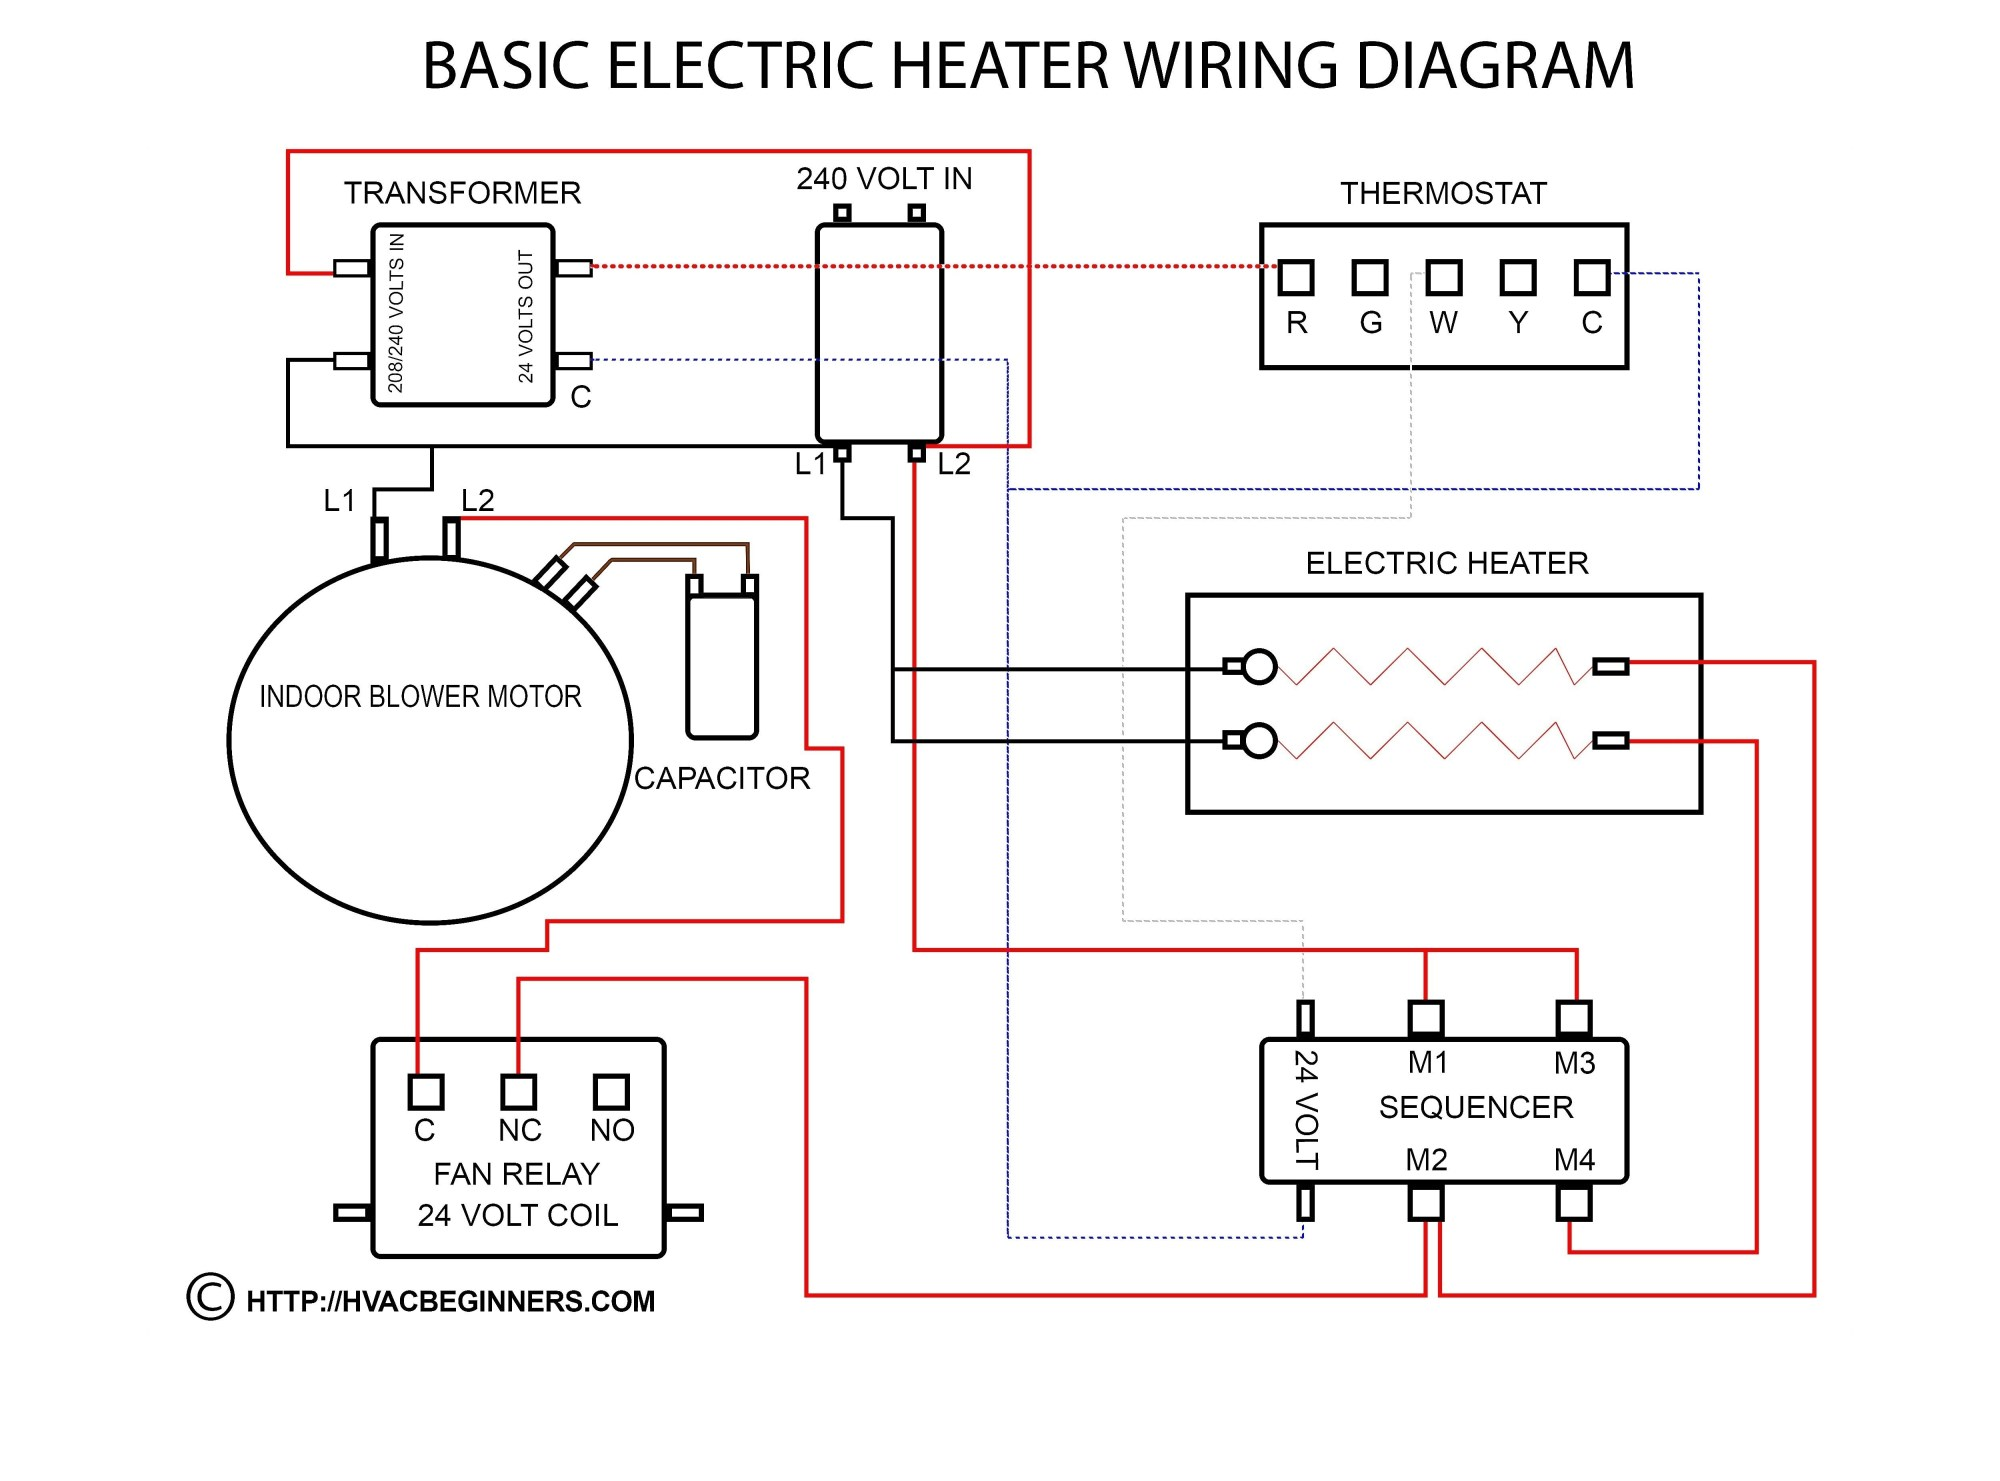 hight resolution of home transformer wiring simple wiring diagram schema fan center relay wiring diagram hvac transformer wiring diagram